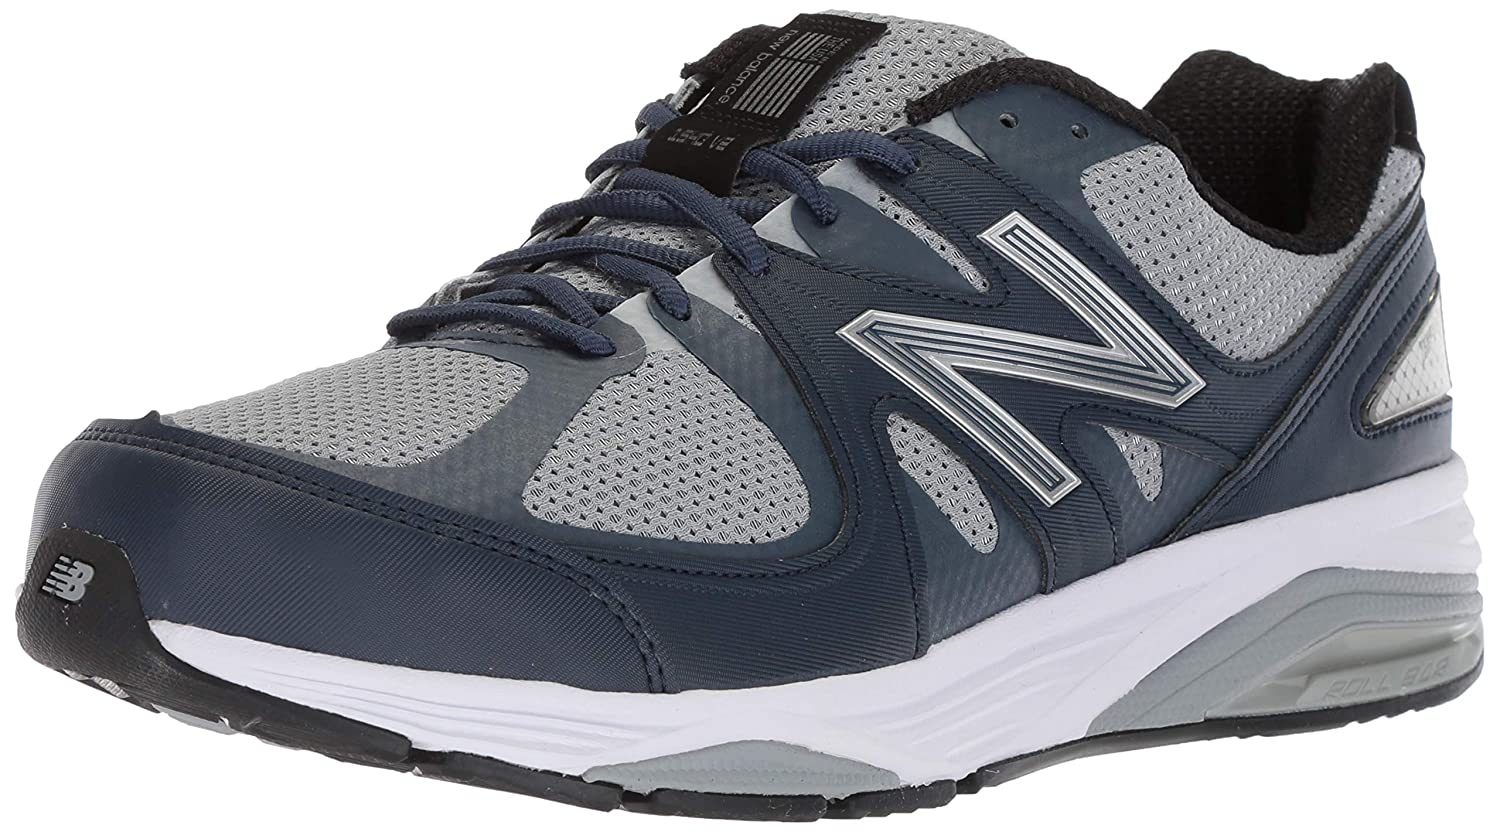 95c2081d011b2 Amazon.com | New Balance 1540v2 Shoe - Men's Running | Running